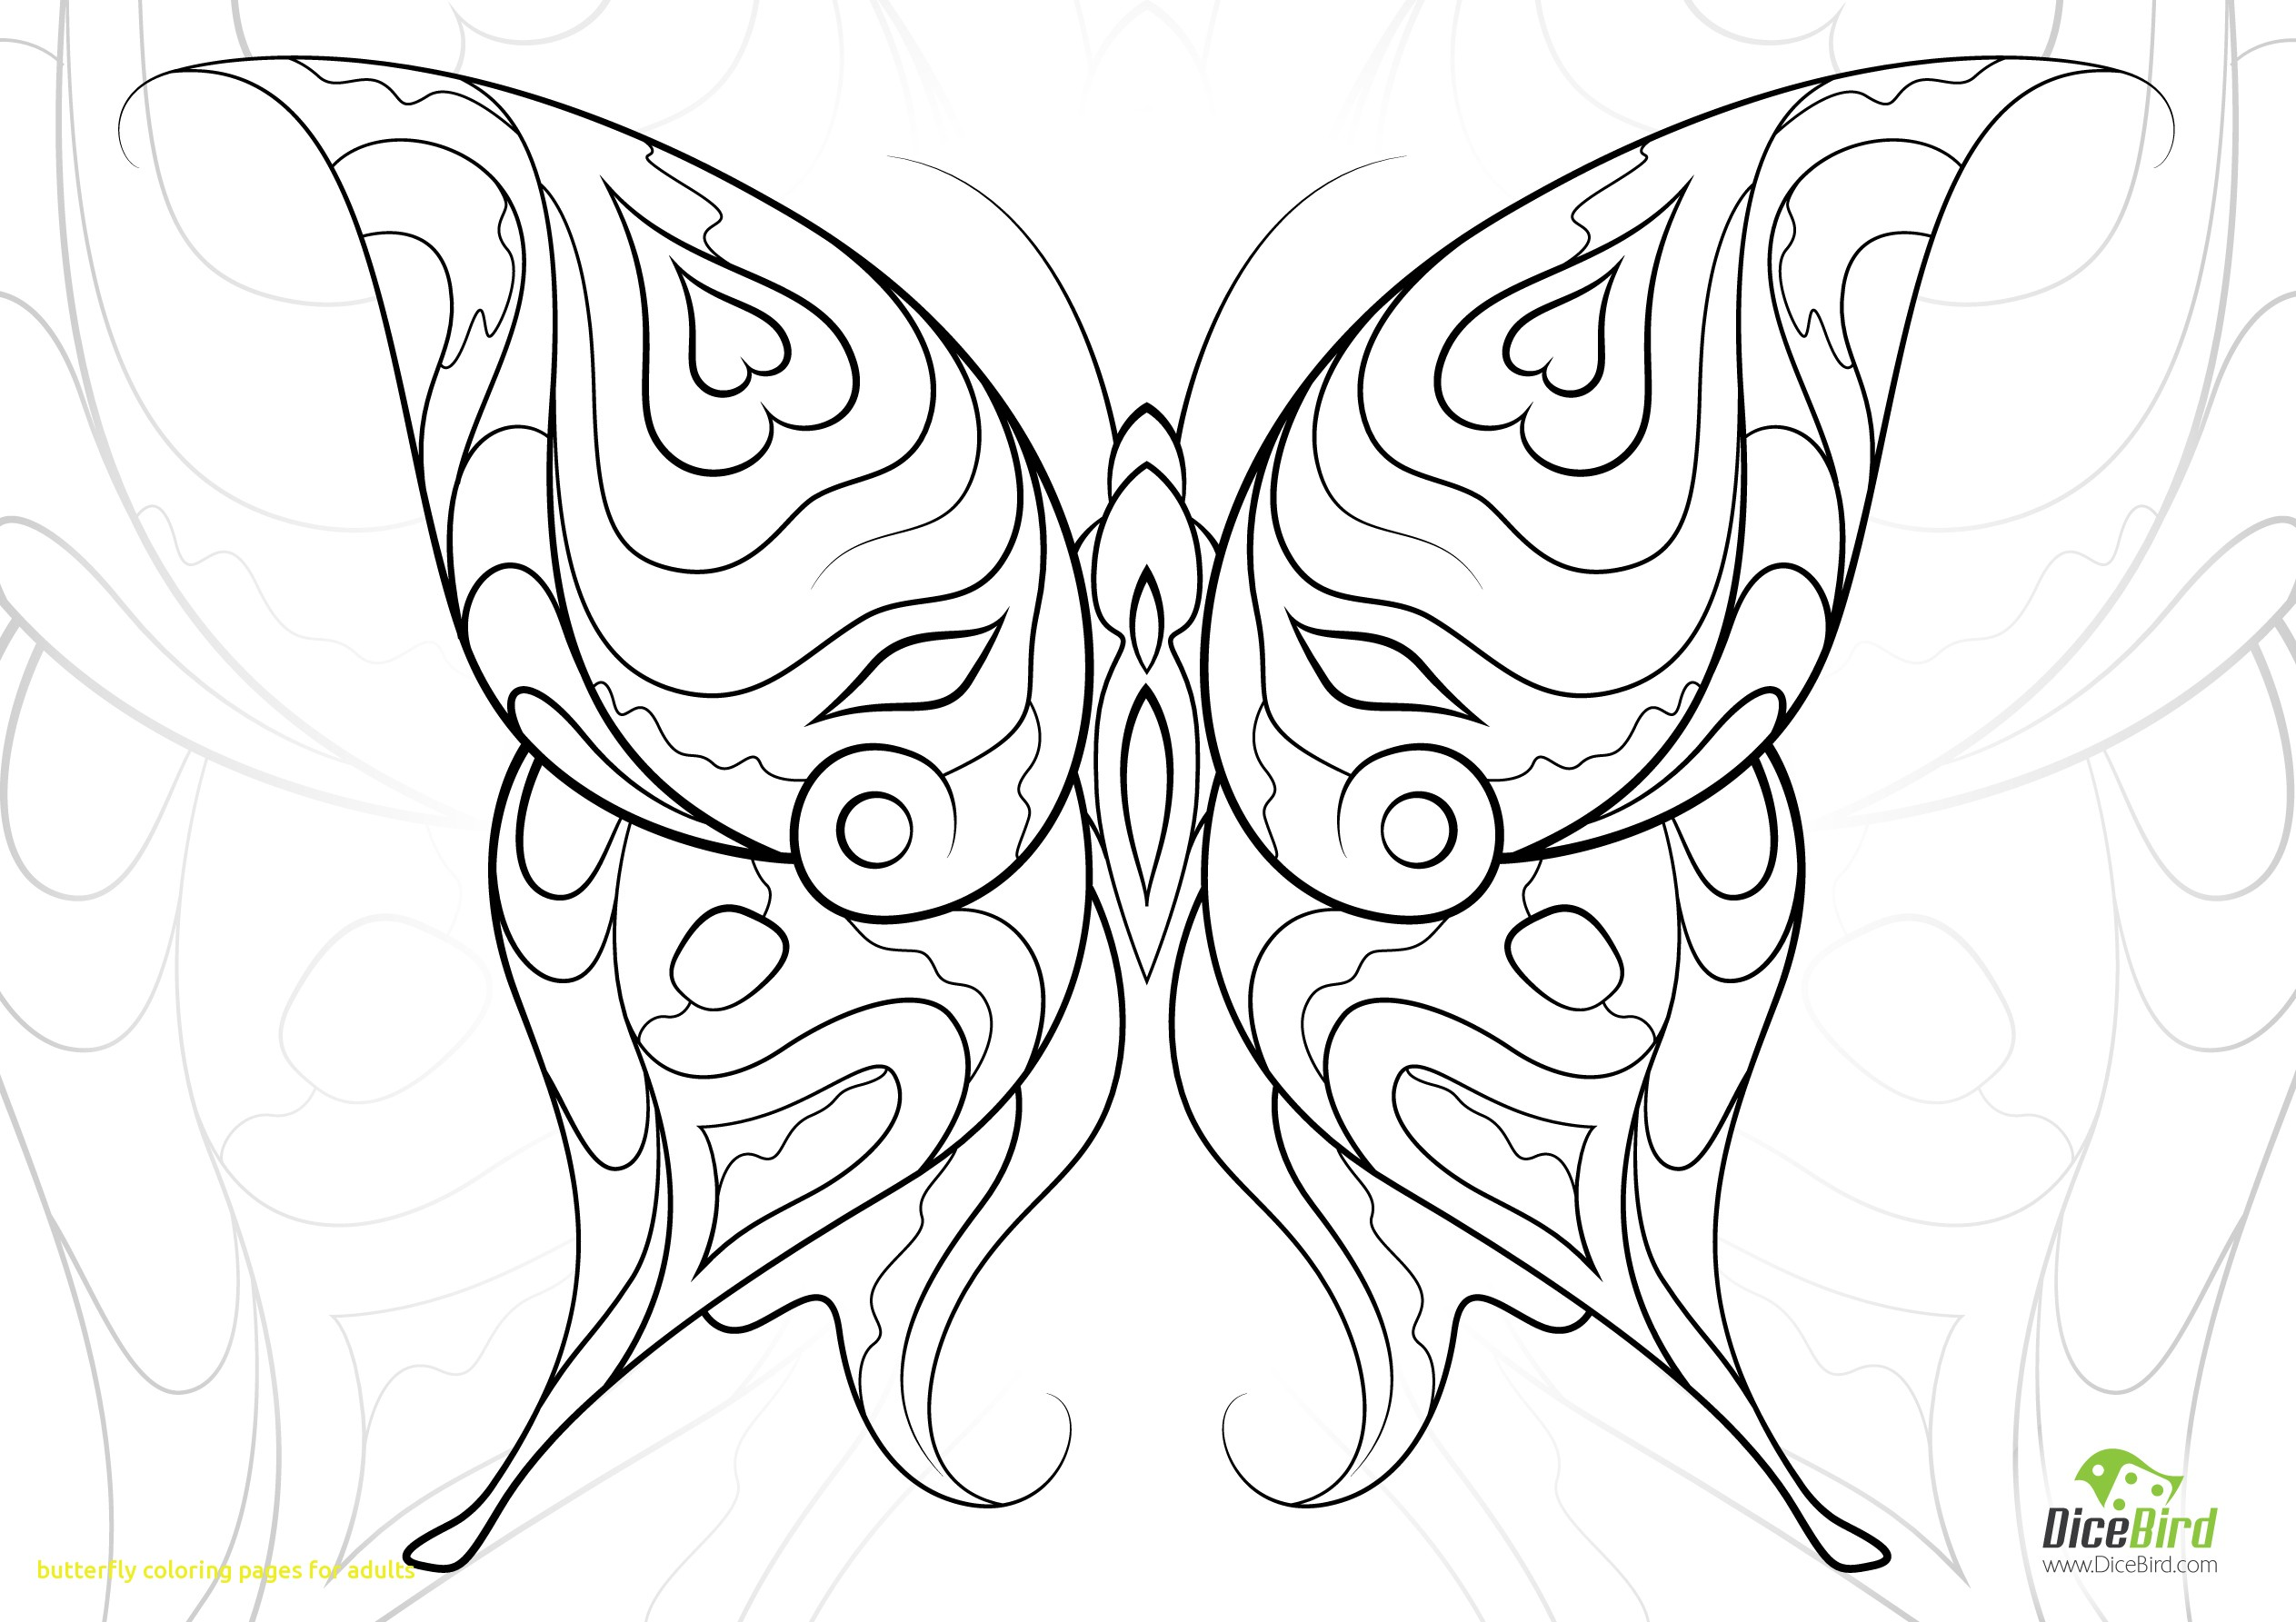 2526x1785 Coloring Pages For Kids Butterfly Blue Morpho Insects Images Flies